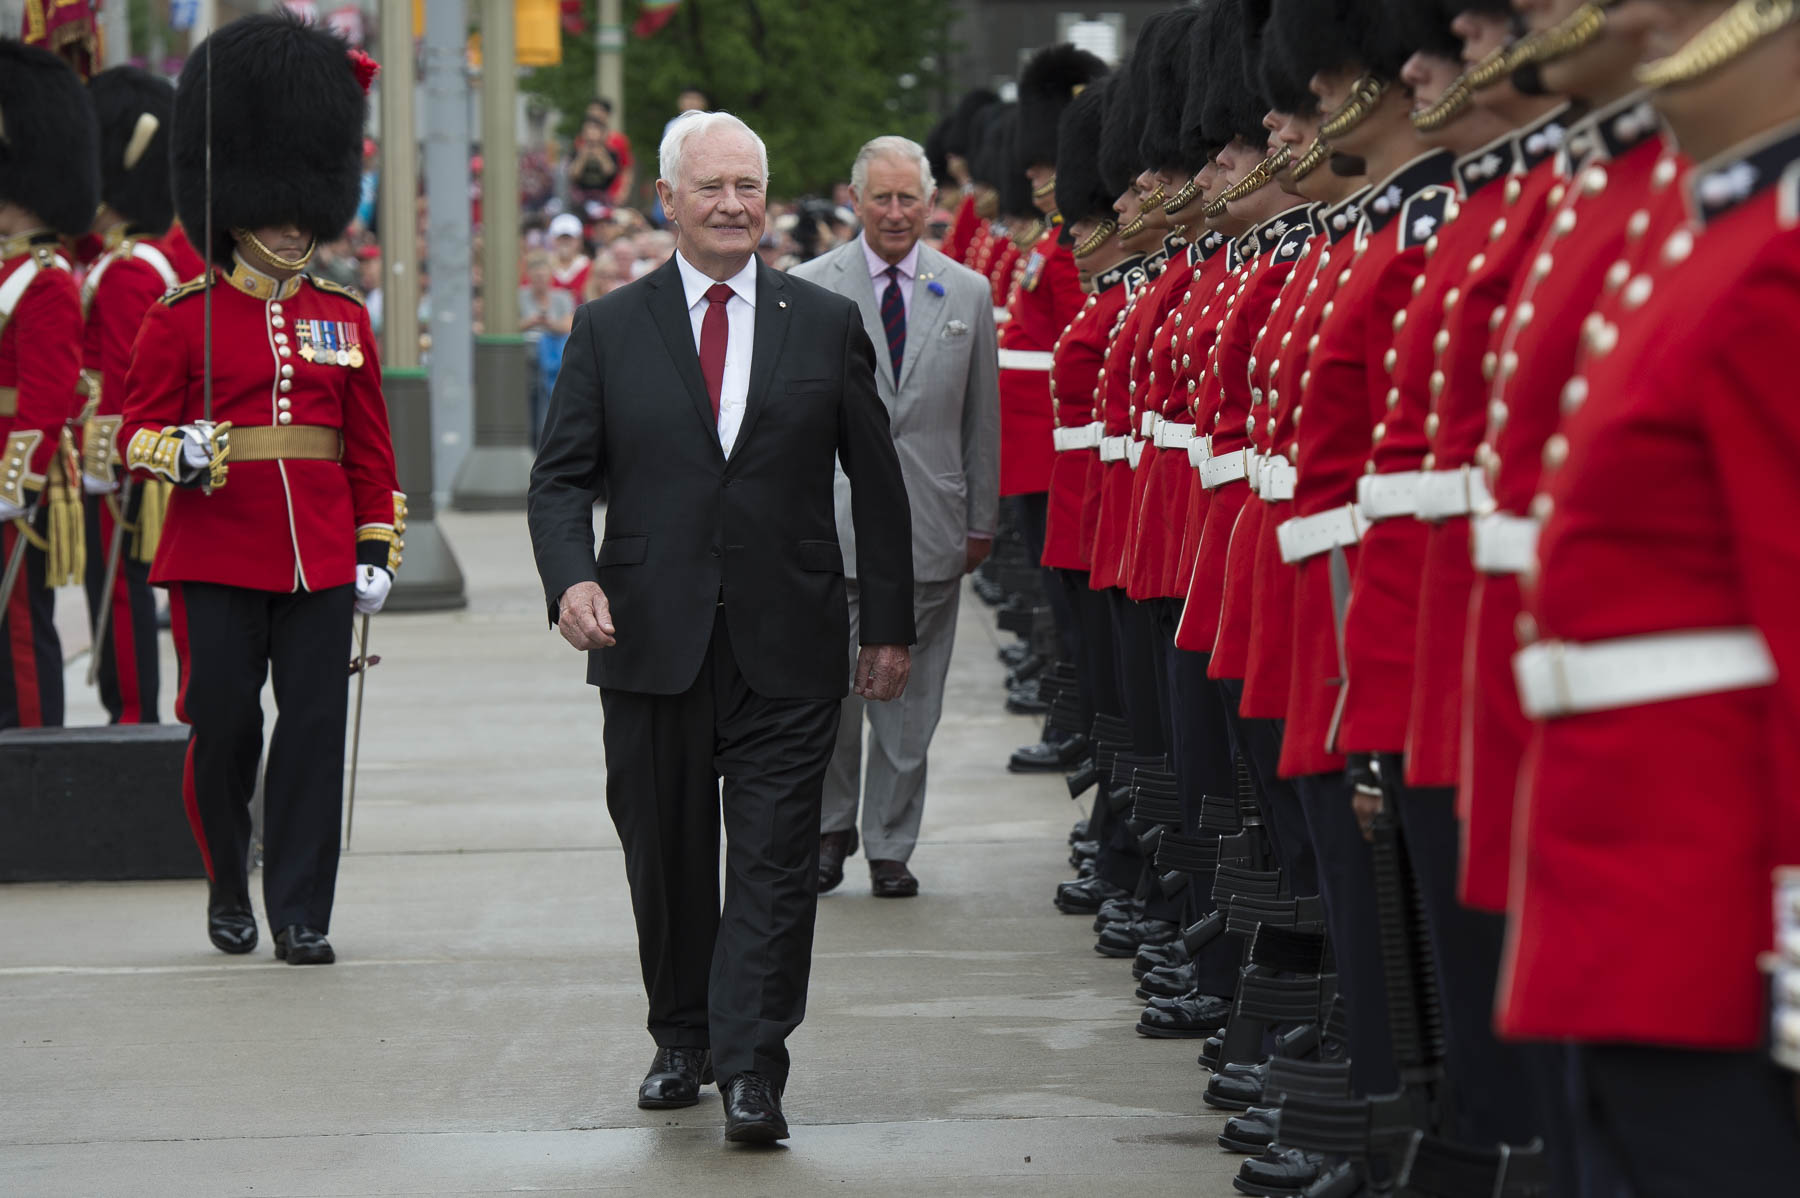 Before making their way to Parliament Hill, Their Excellencies and Their Royal Highnesses visited Reconciliation: The Peacekeeping Monument, where His Excellency and His Royal Highness inspected a guard of honour from the Ceremonial Guard.